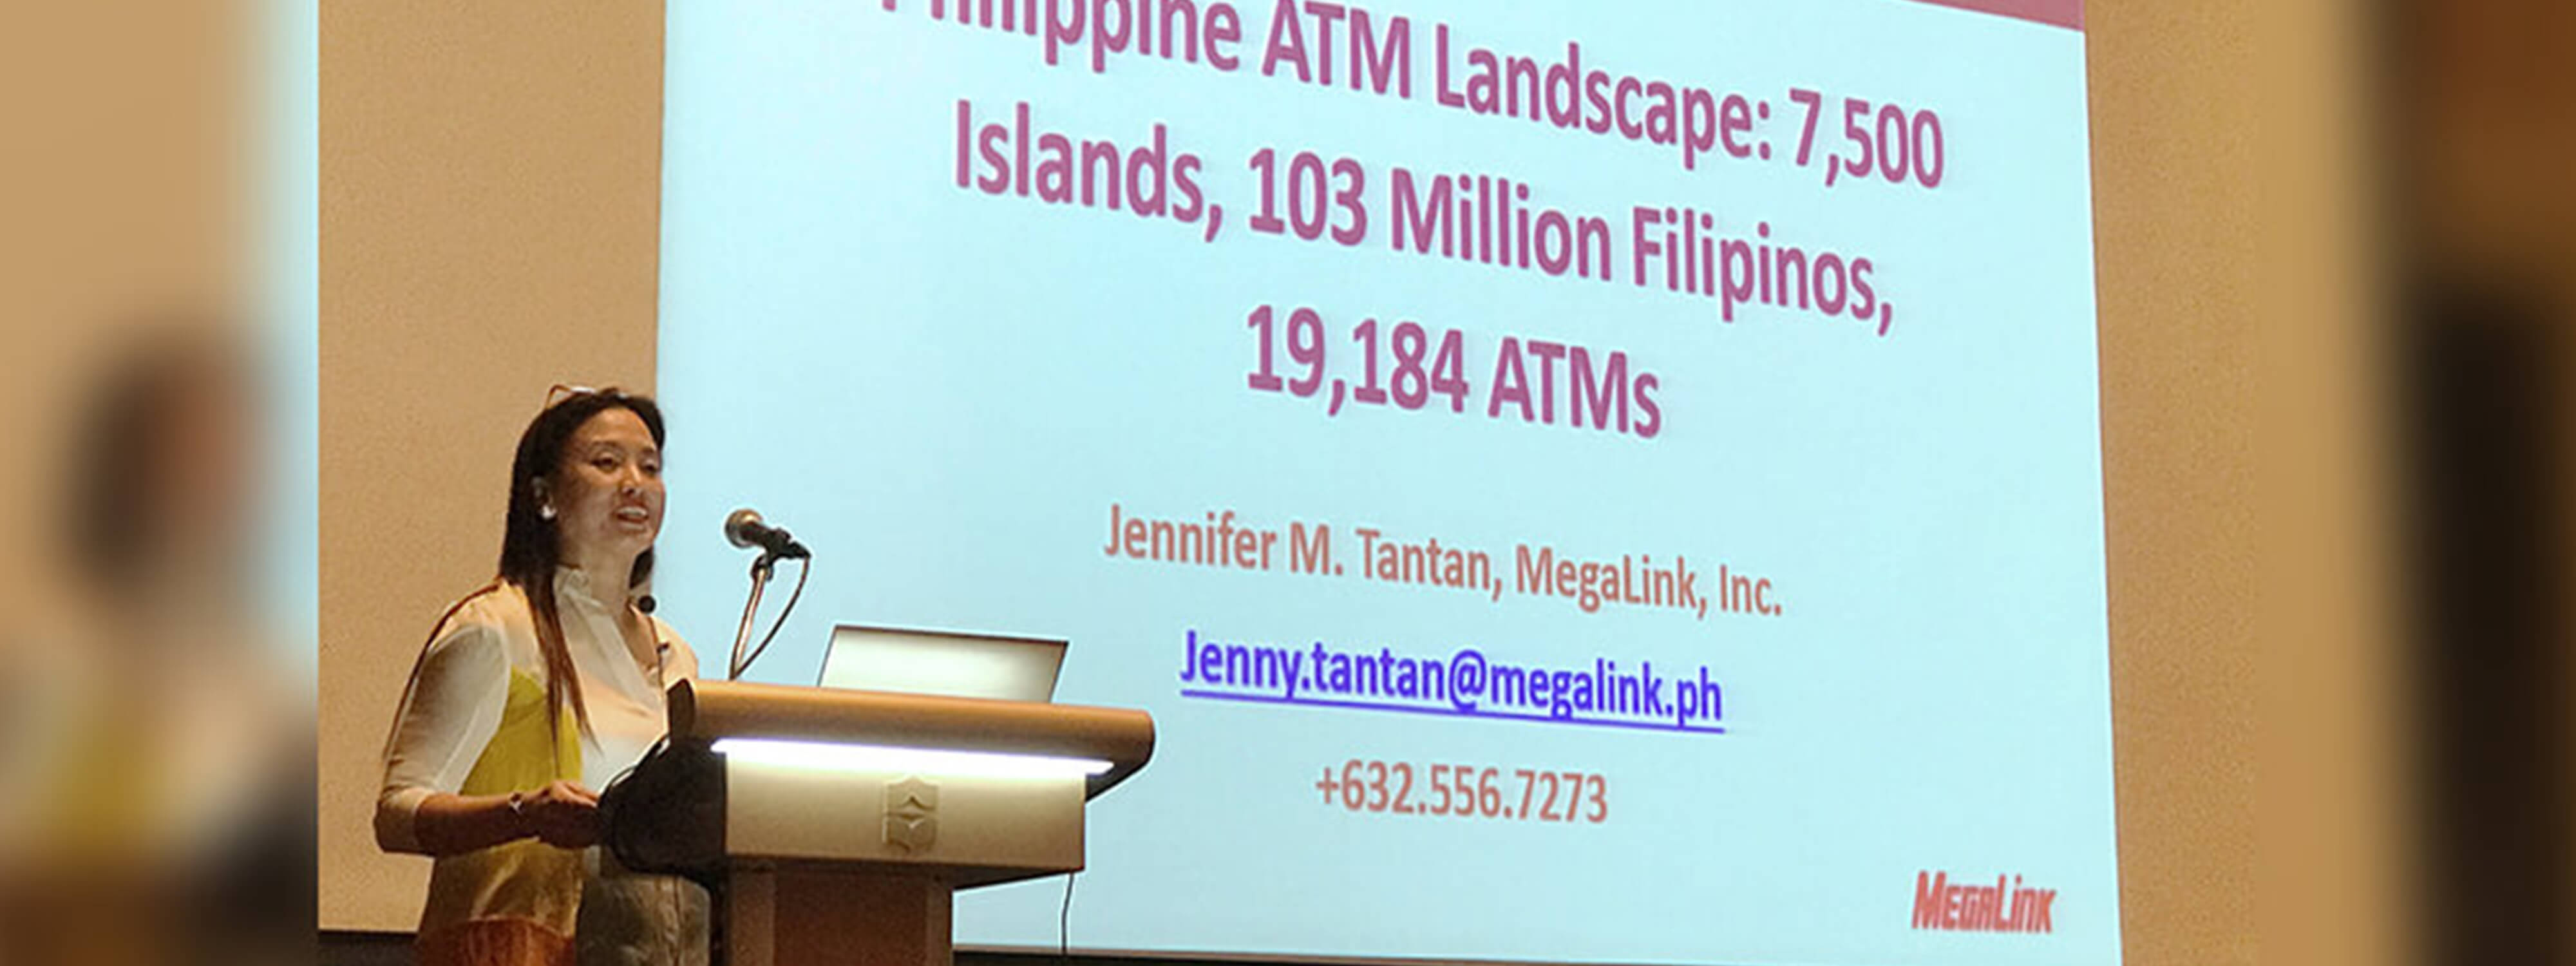 Philippine ATM Landscape: 7,500 Islands, 103 Million Filipinos 19,184 ATMs